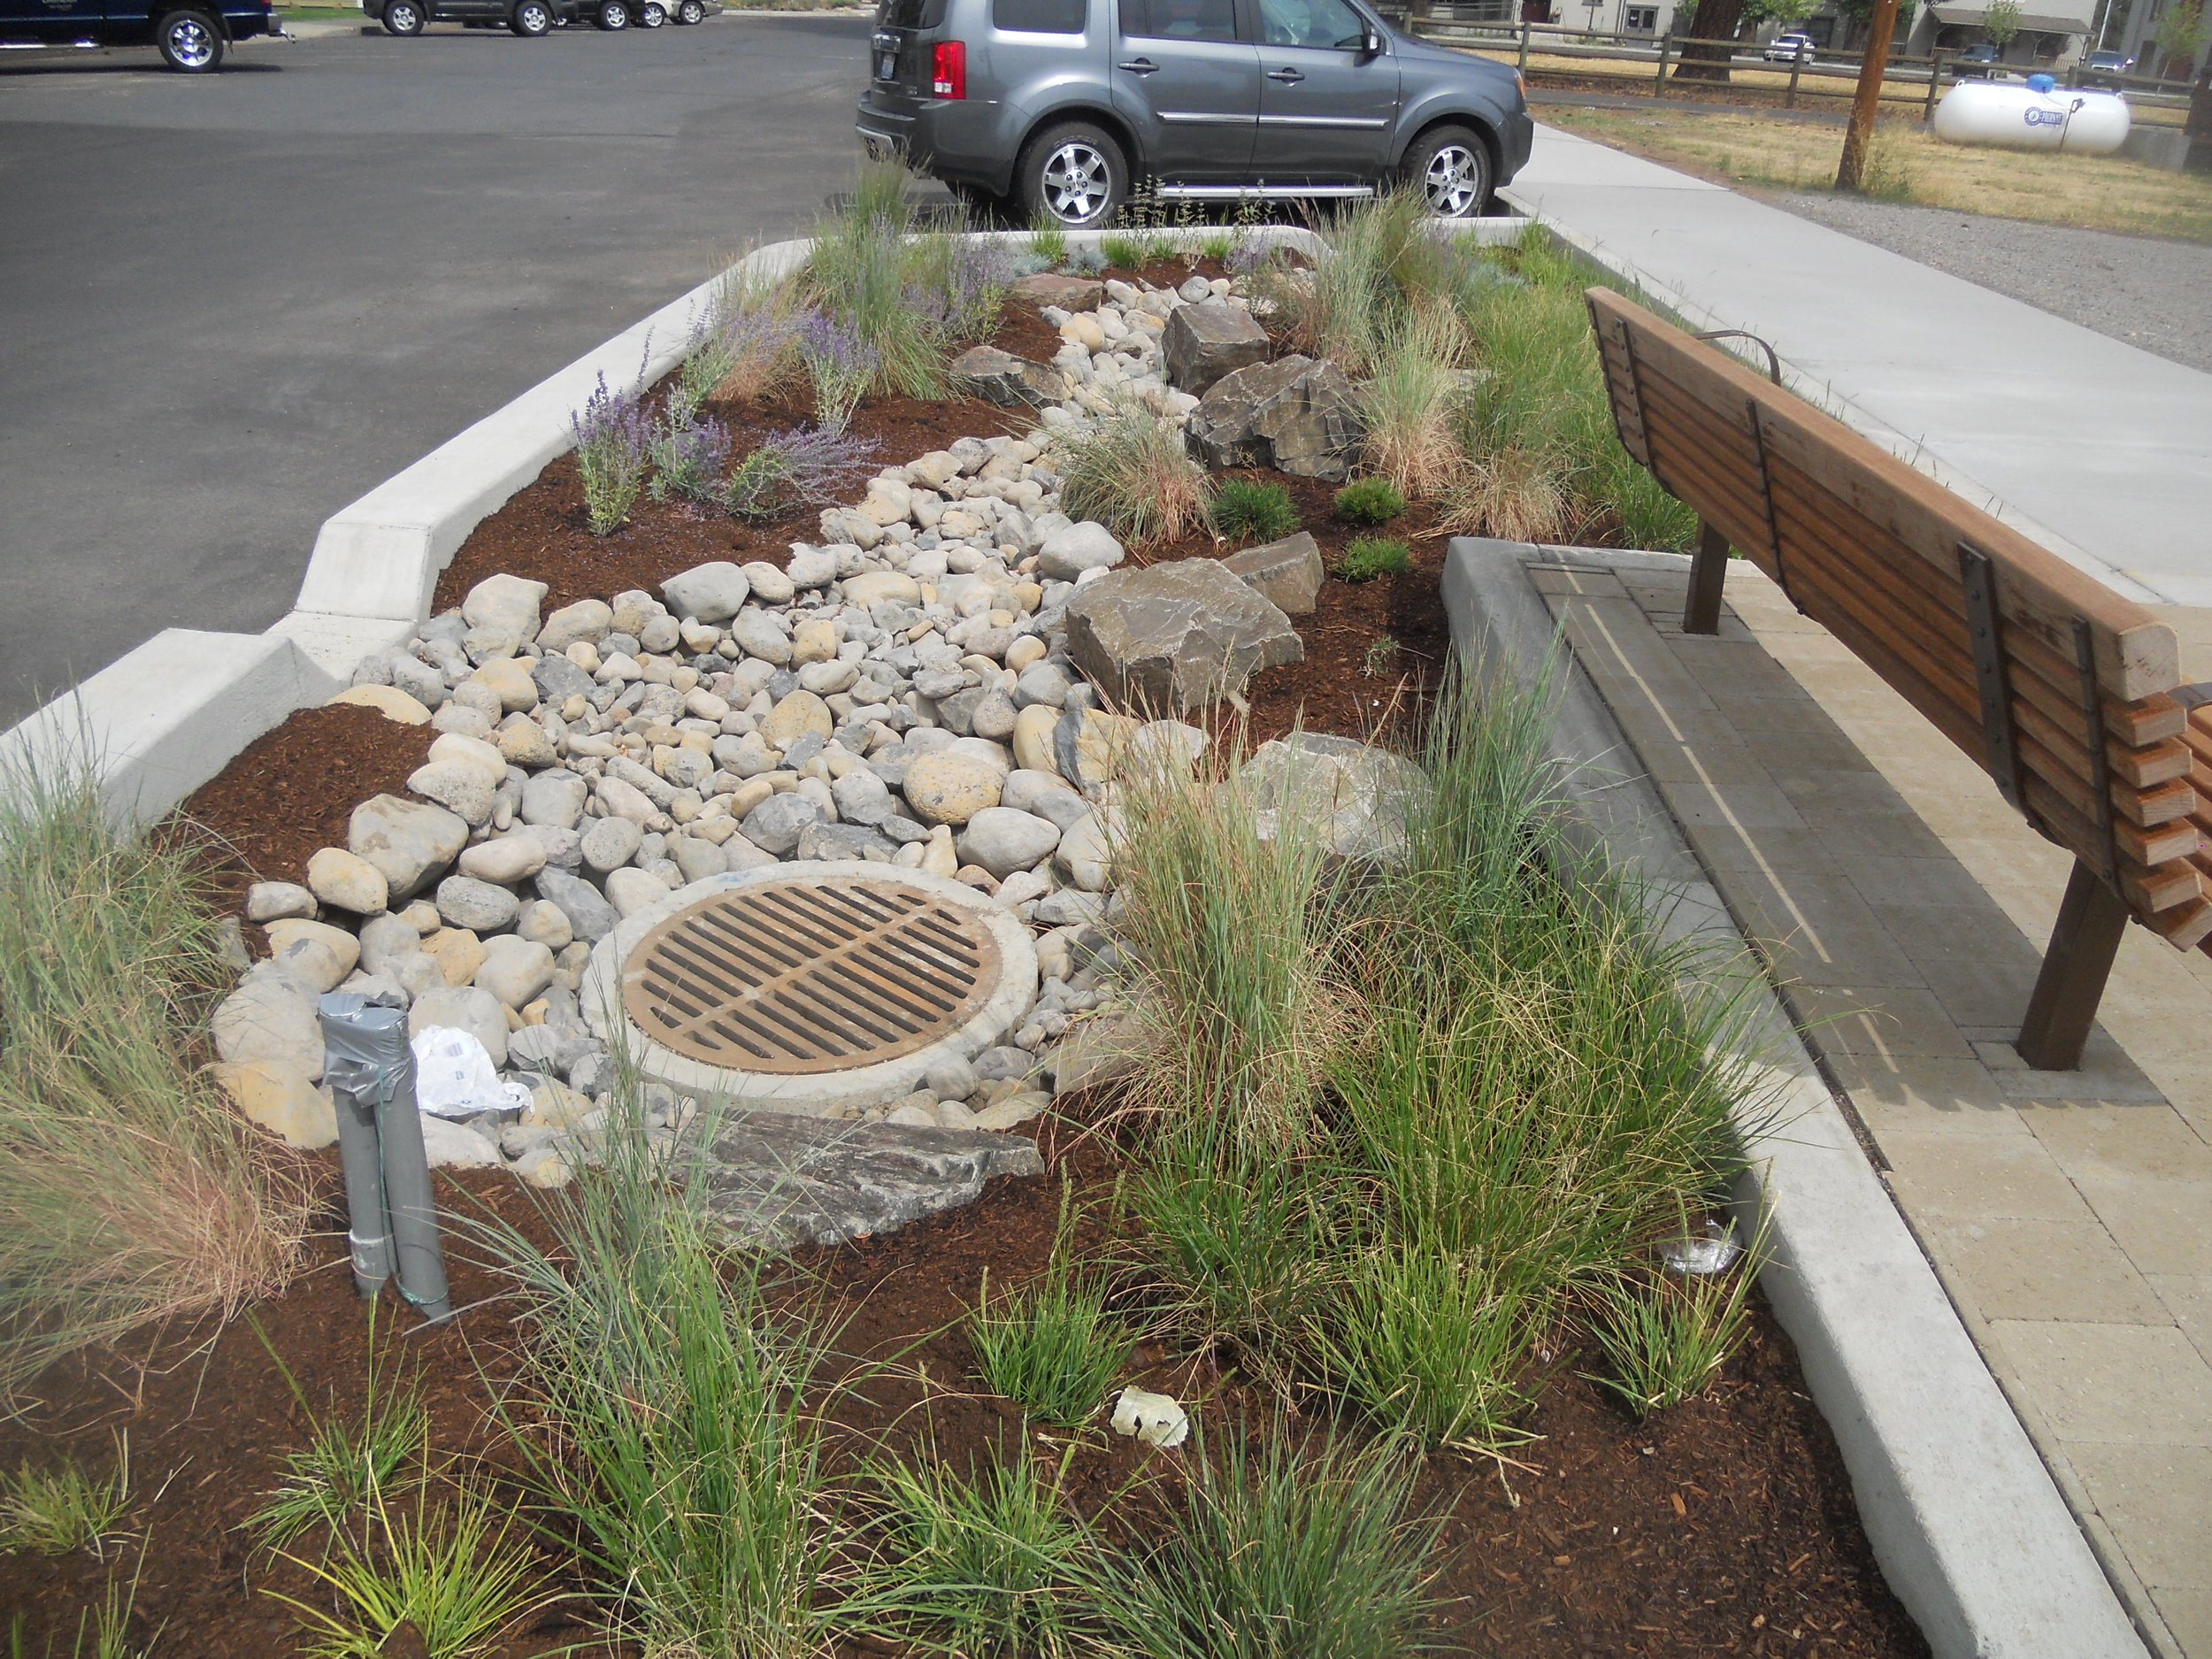 greenstreet stormwater swale with rocks and grasses along highway 20 in sisters, oregon